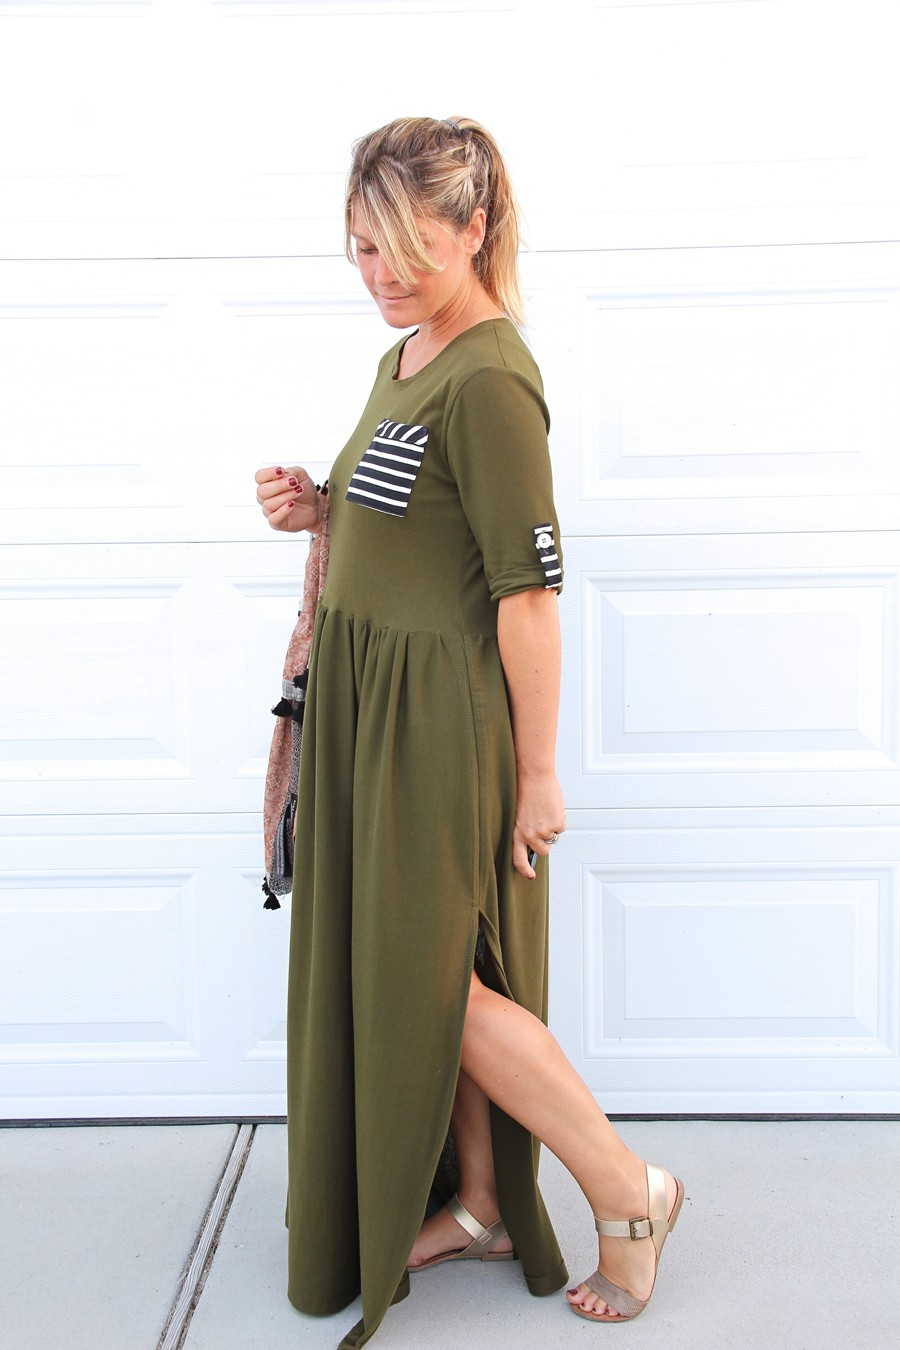 MAKE THIS LOOK: Striped pocket maxi dress || How to sew a patch pocket with bias binding